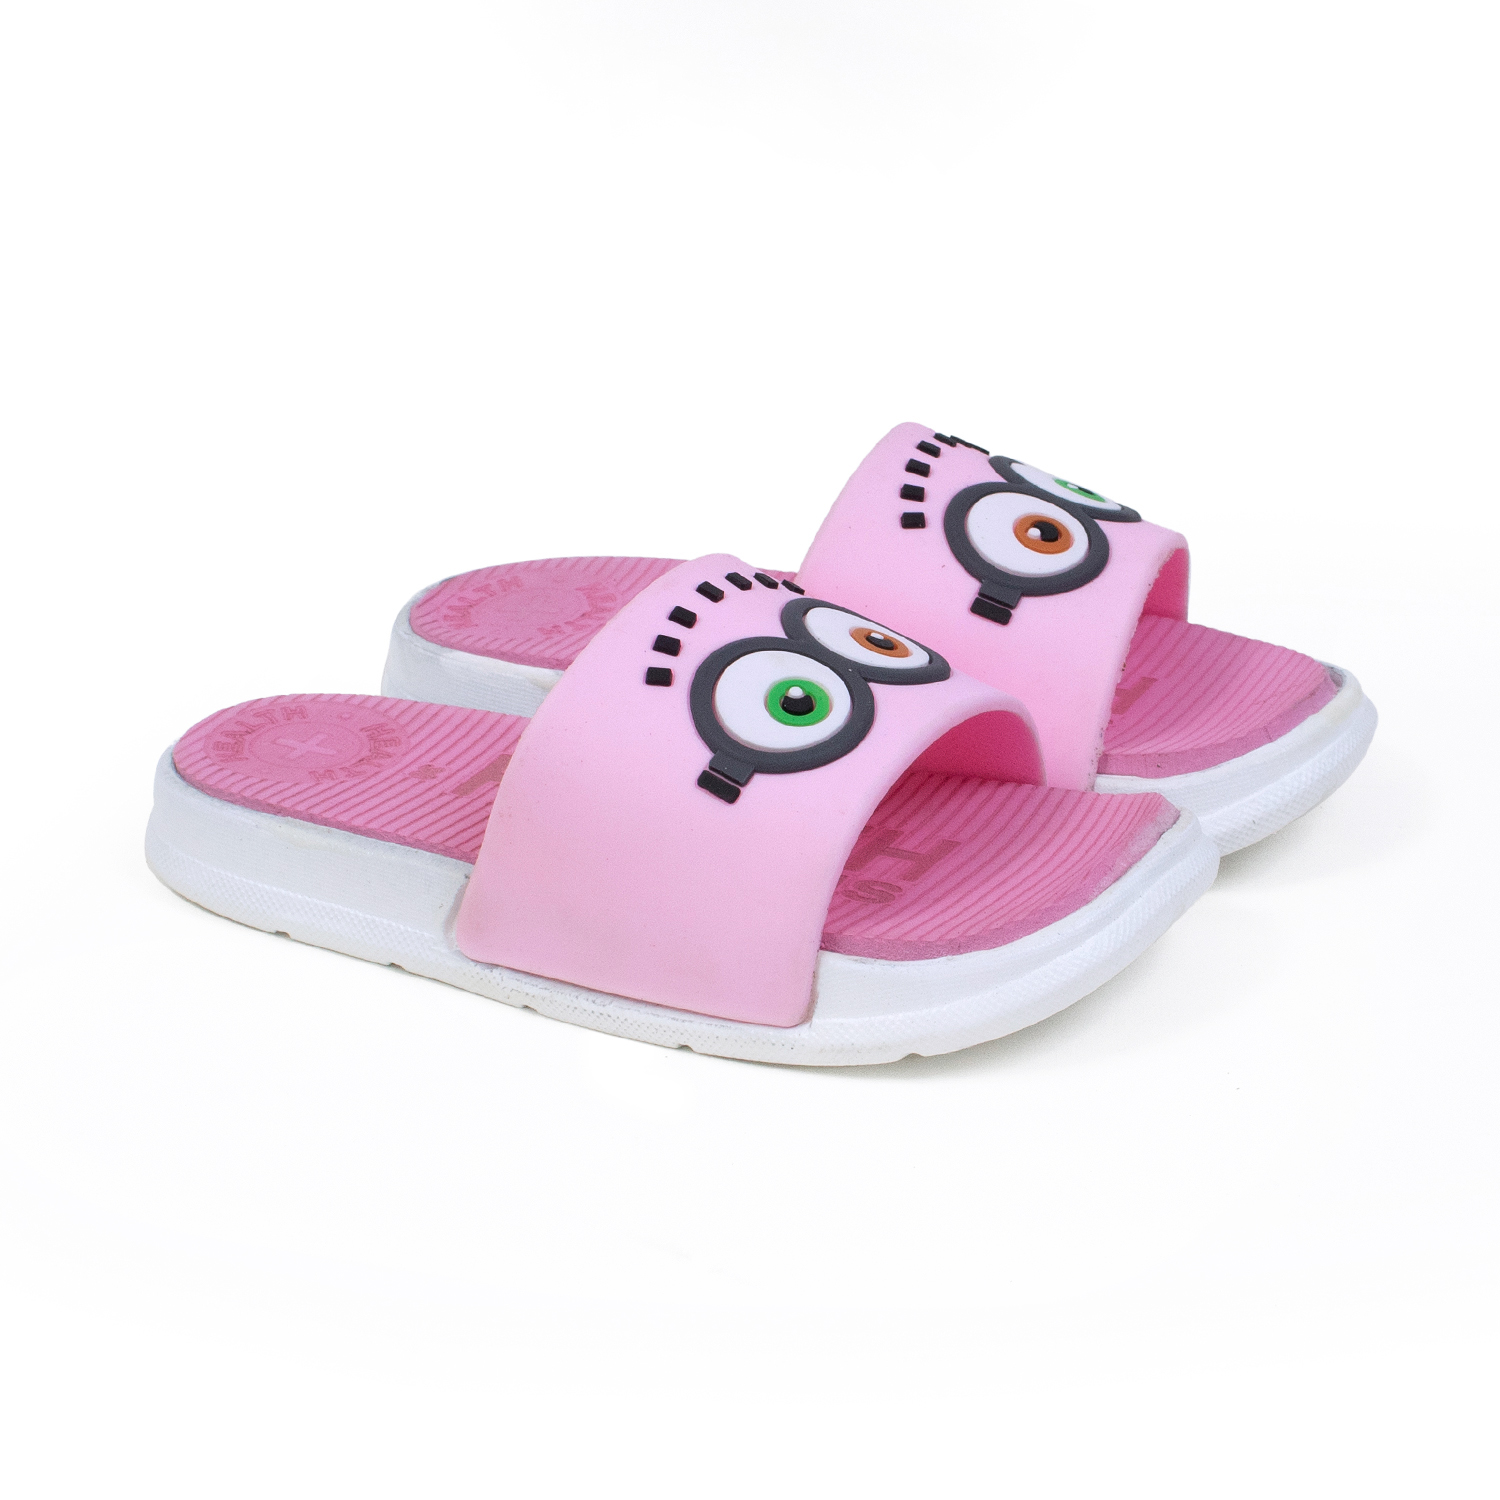 Foot Trends Latest Stylish Slipper For Kids GogglePnk30-35 (Pink, 30-35, 6 PAIR)